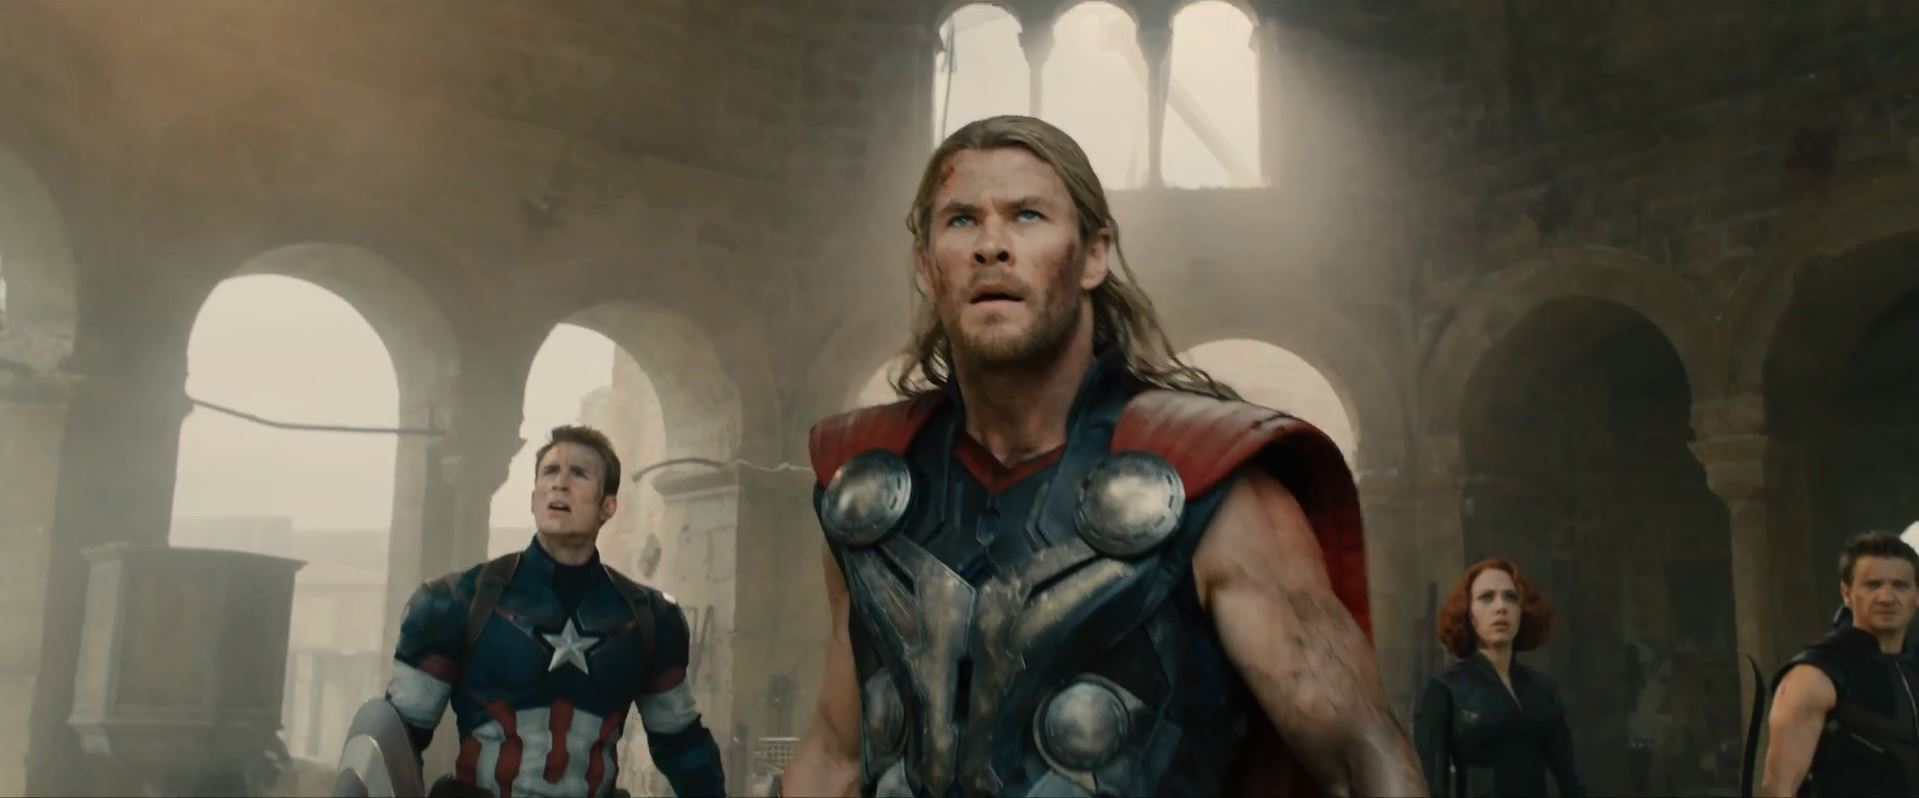 Avengers Age Of Ultron Trailer Released - Chris Hemsworth as Thor